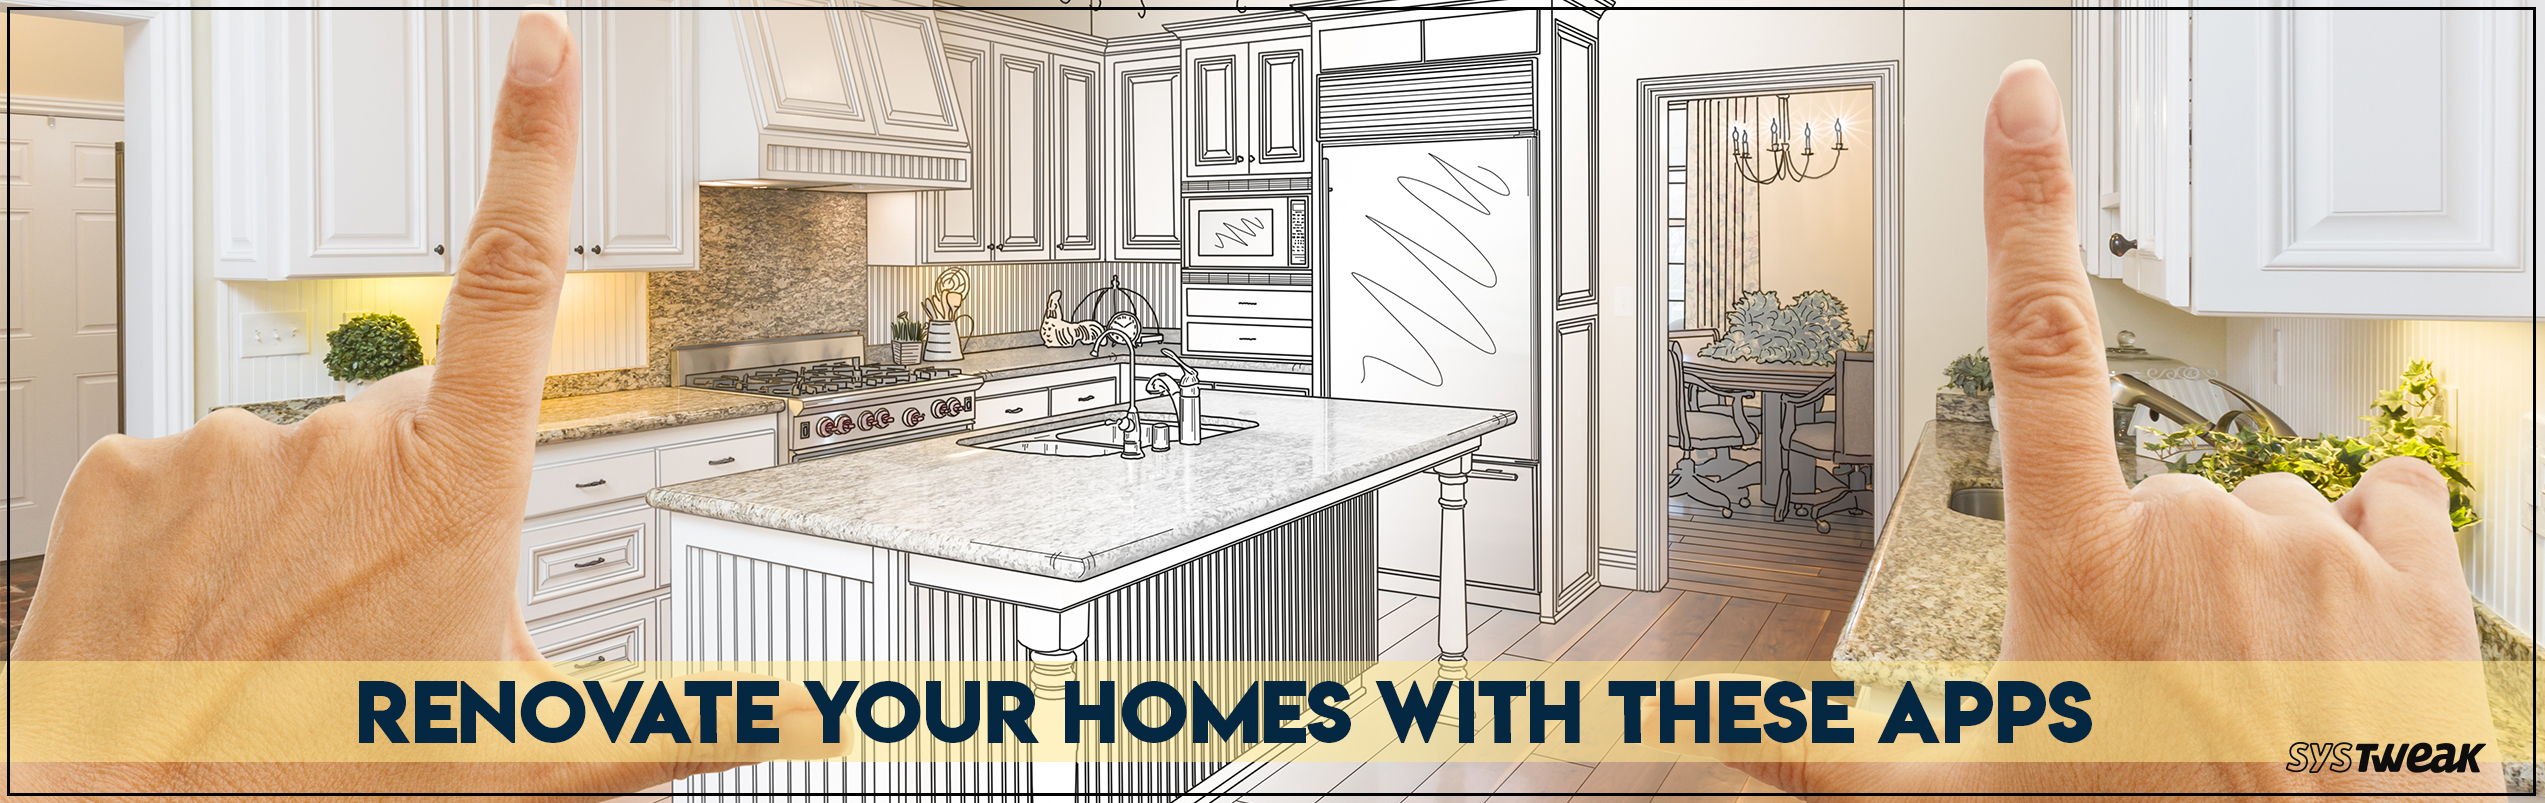 Best Home Renovation Apps For Your Dream Home